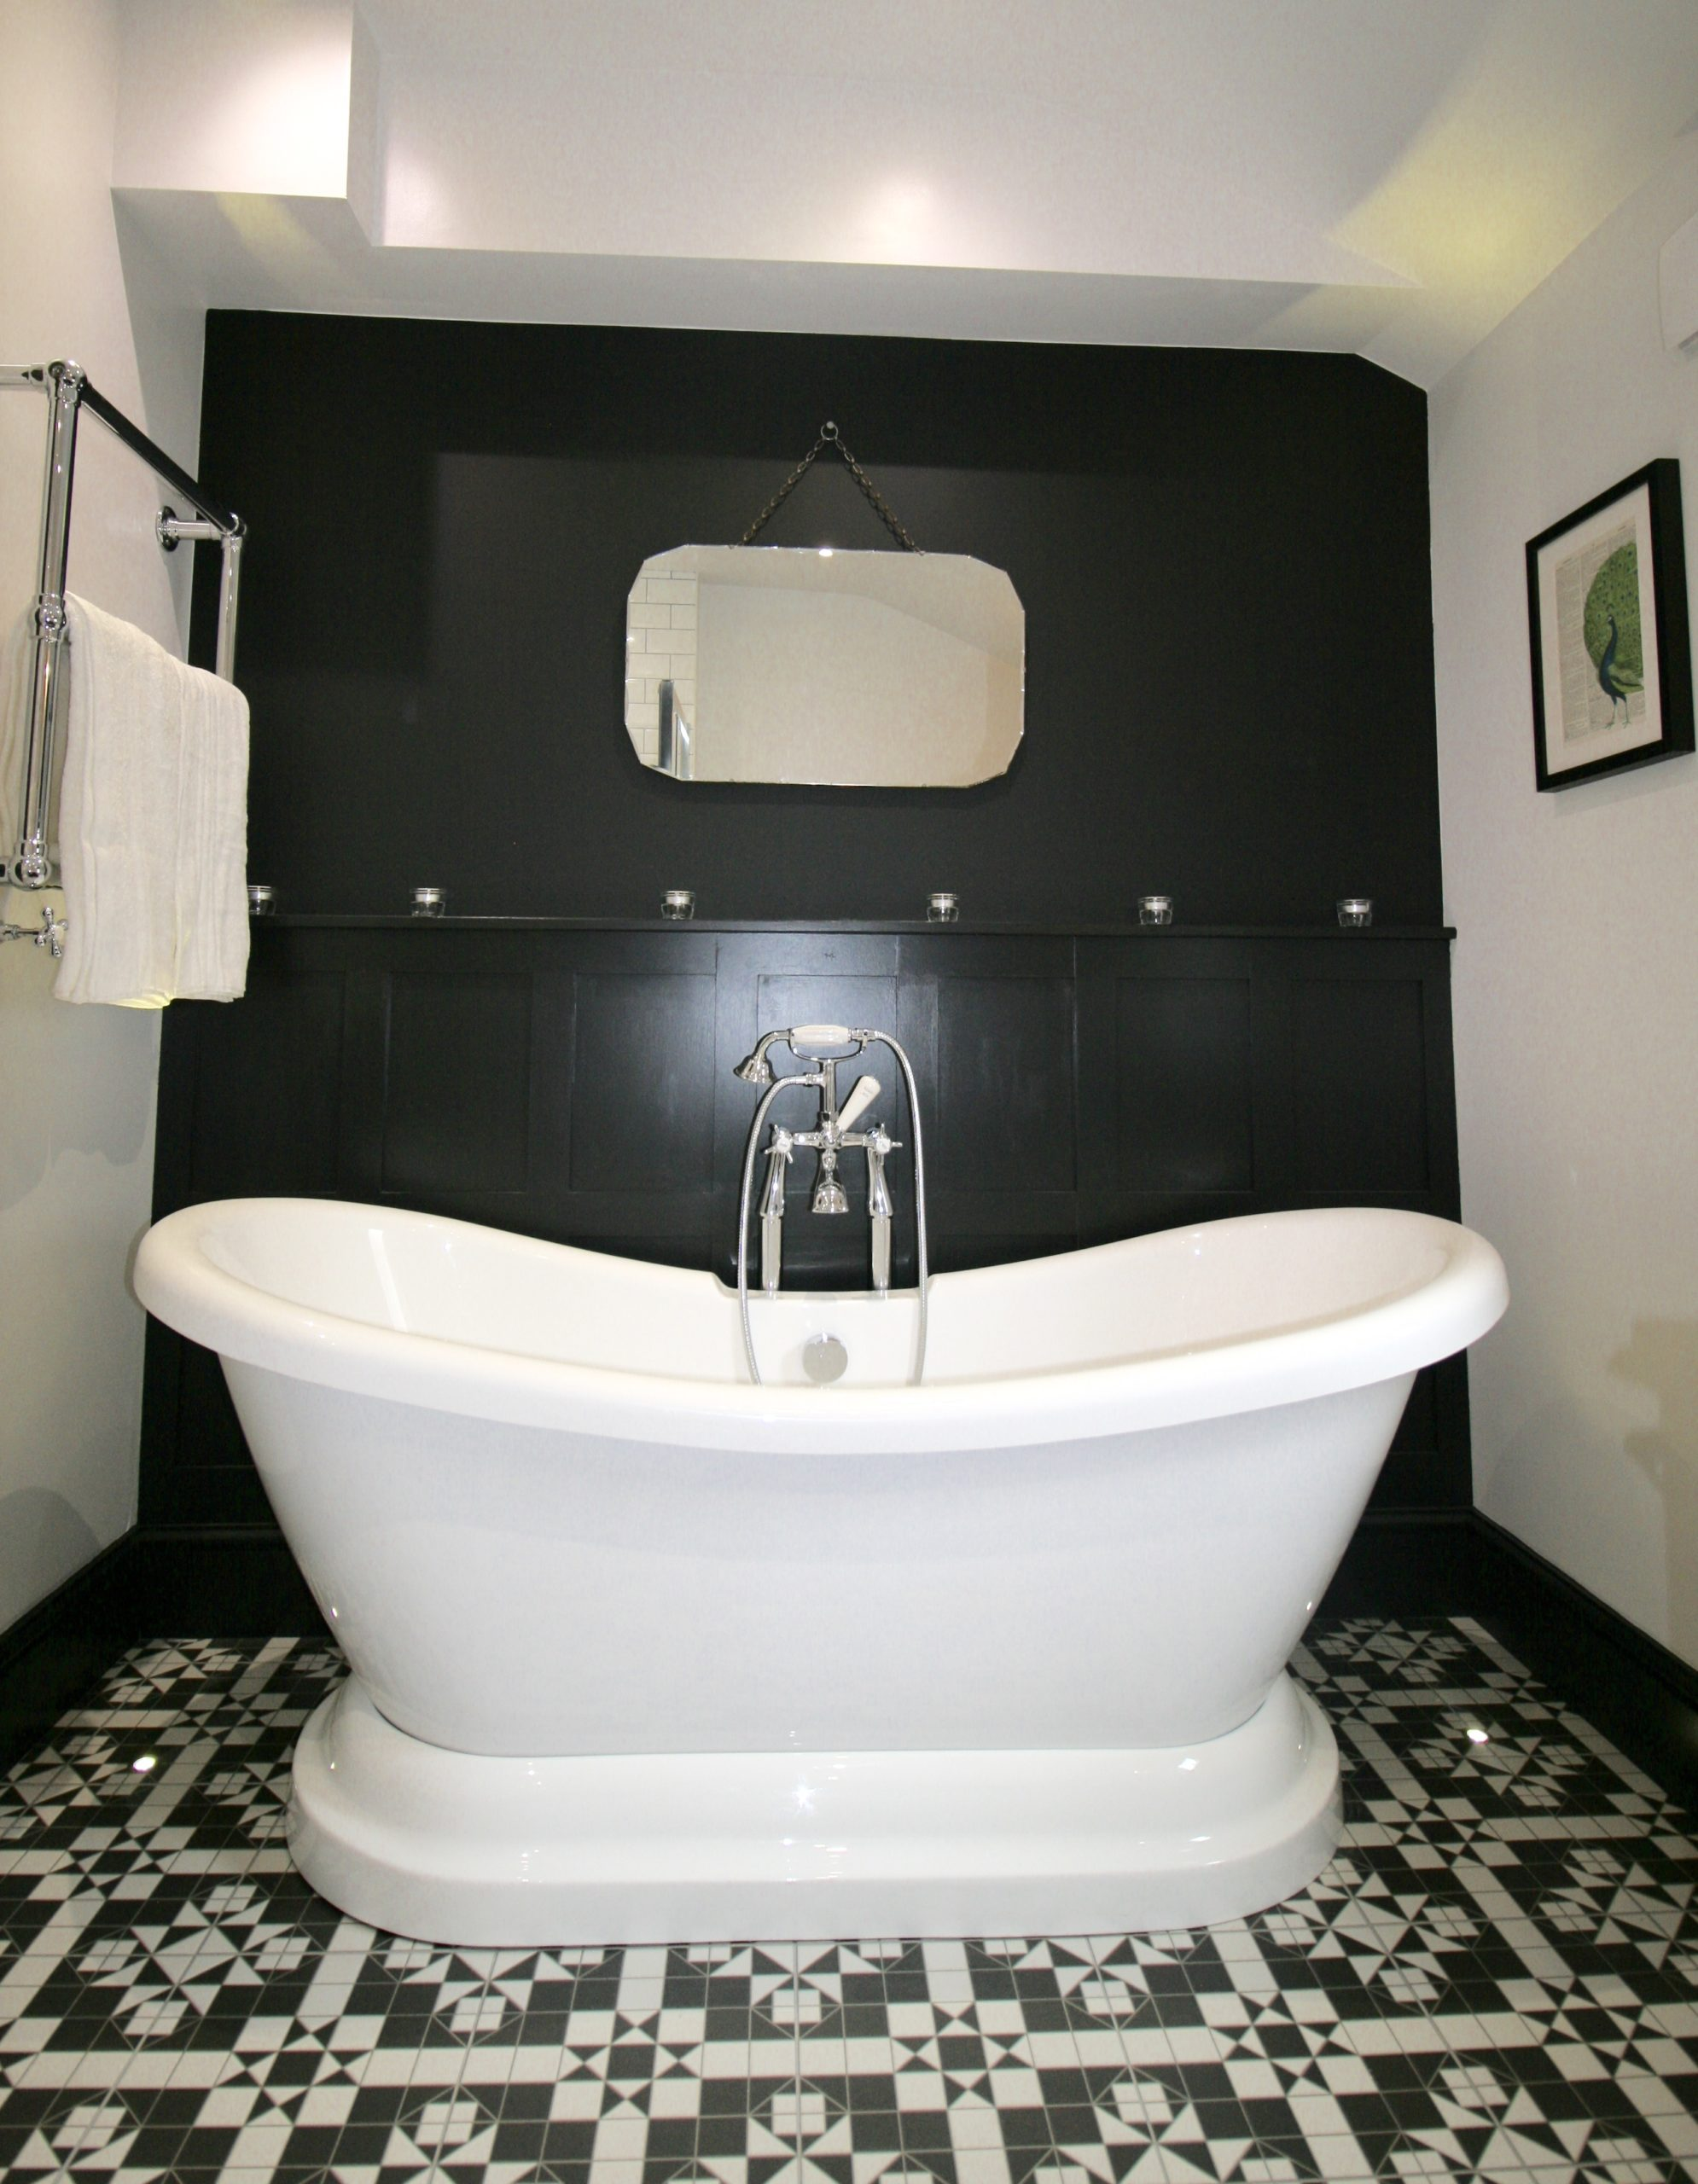 Bathroom - double ended slipper bath against a black panelled wall and lit from below